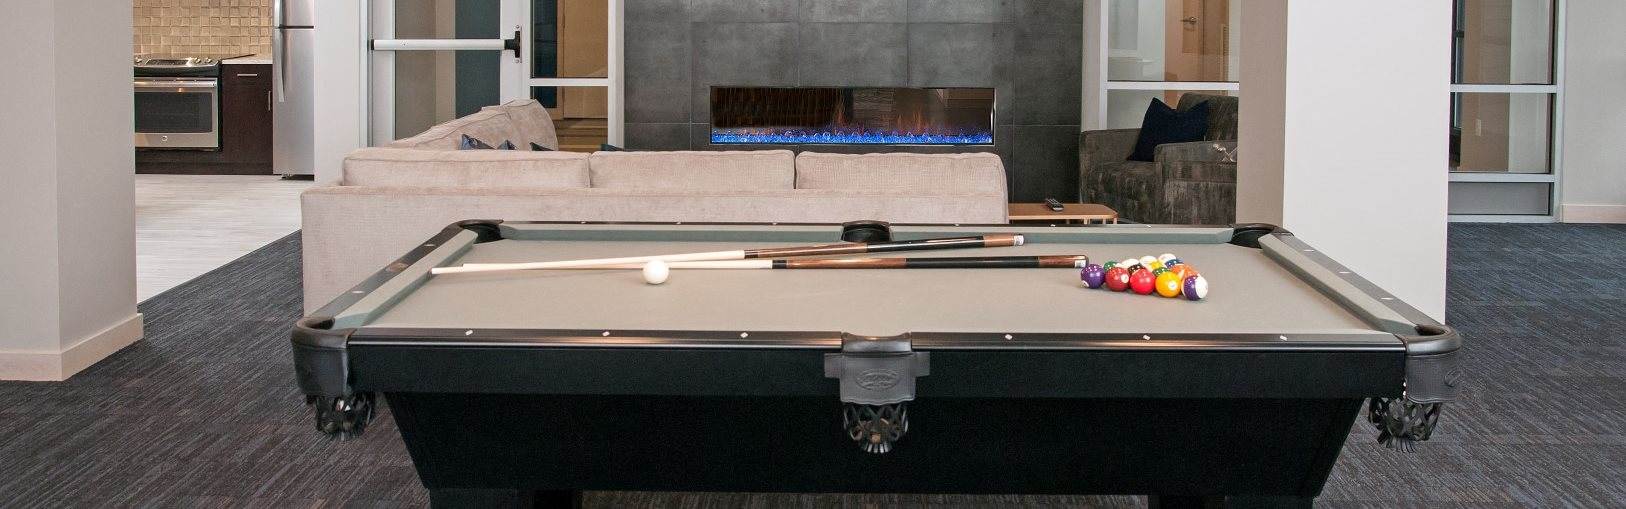 Club Room with Pool Table at The Axis, Minnesota